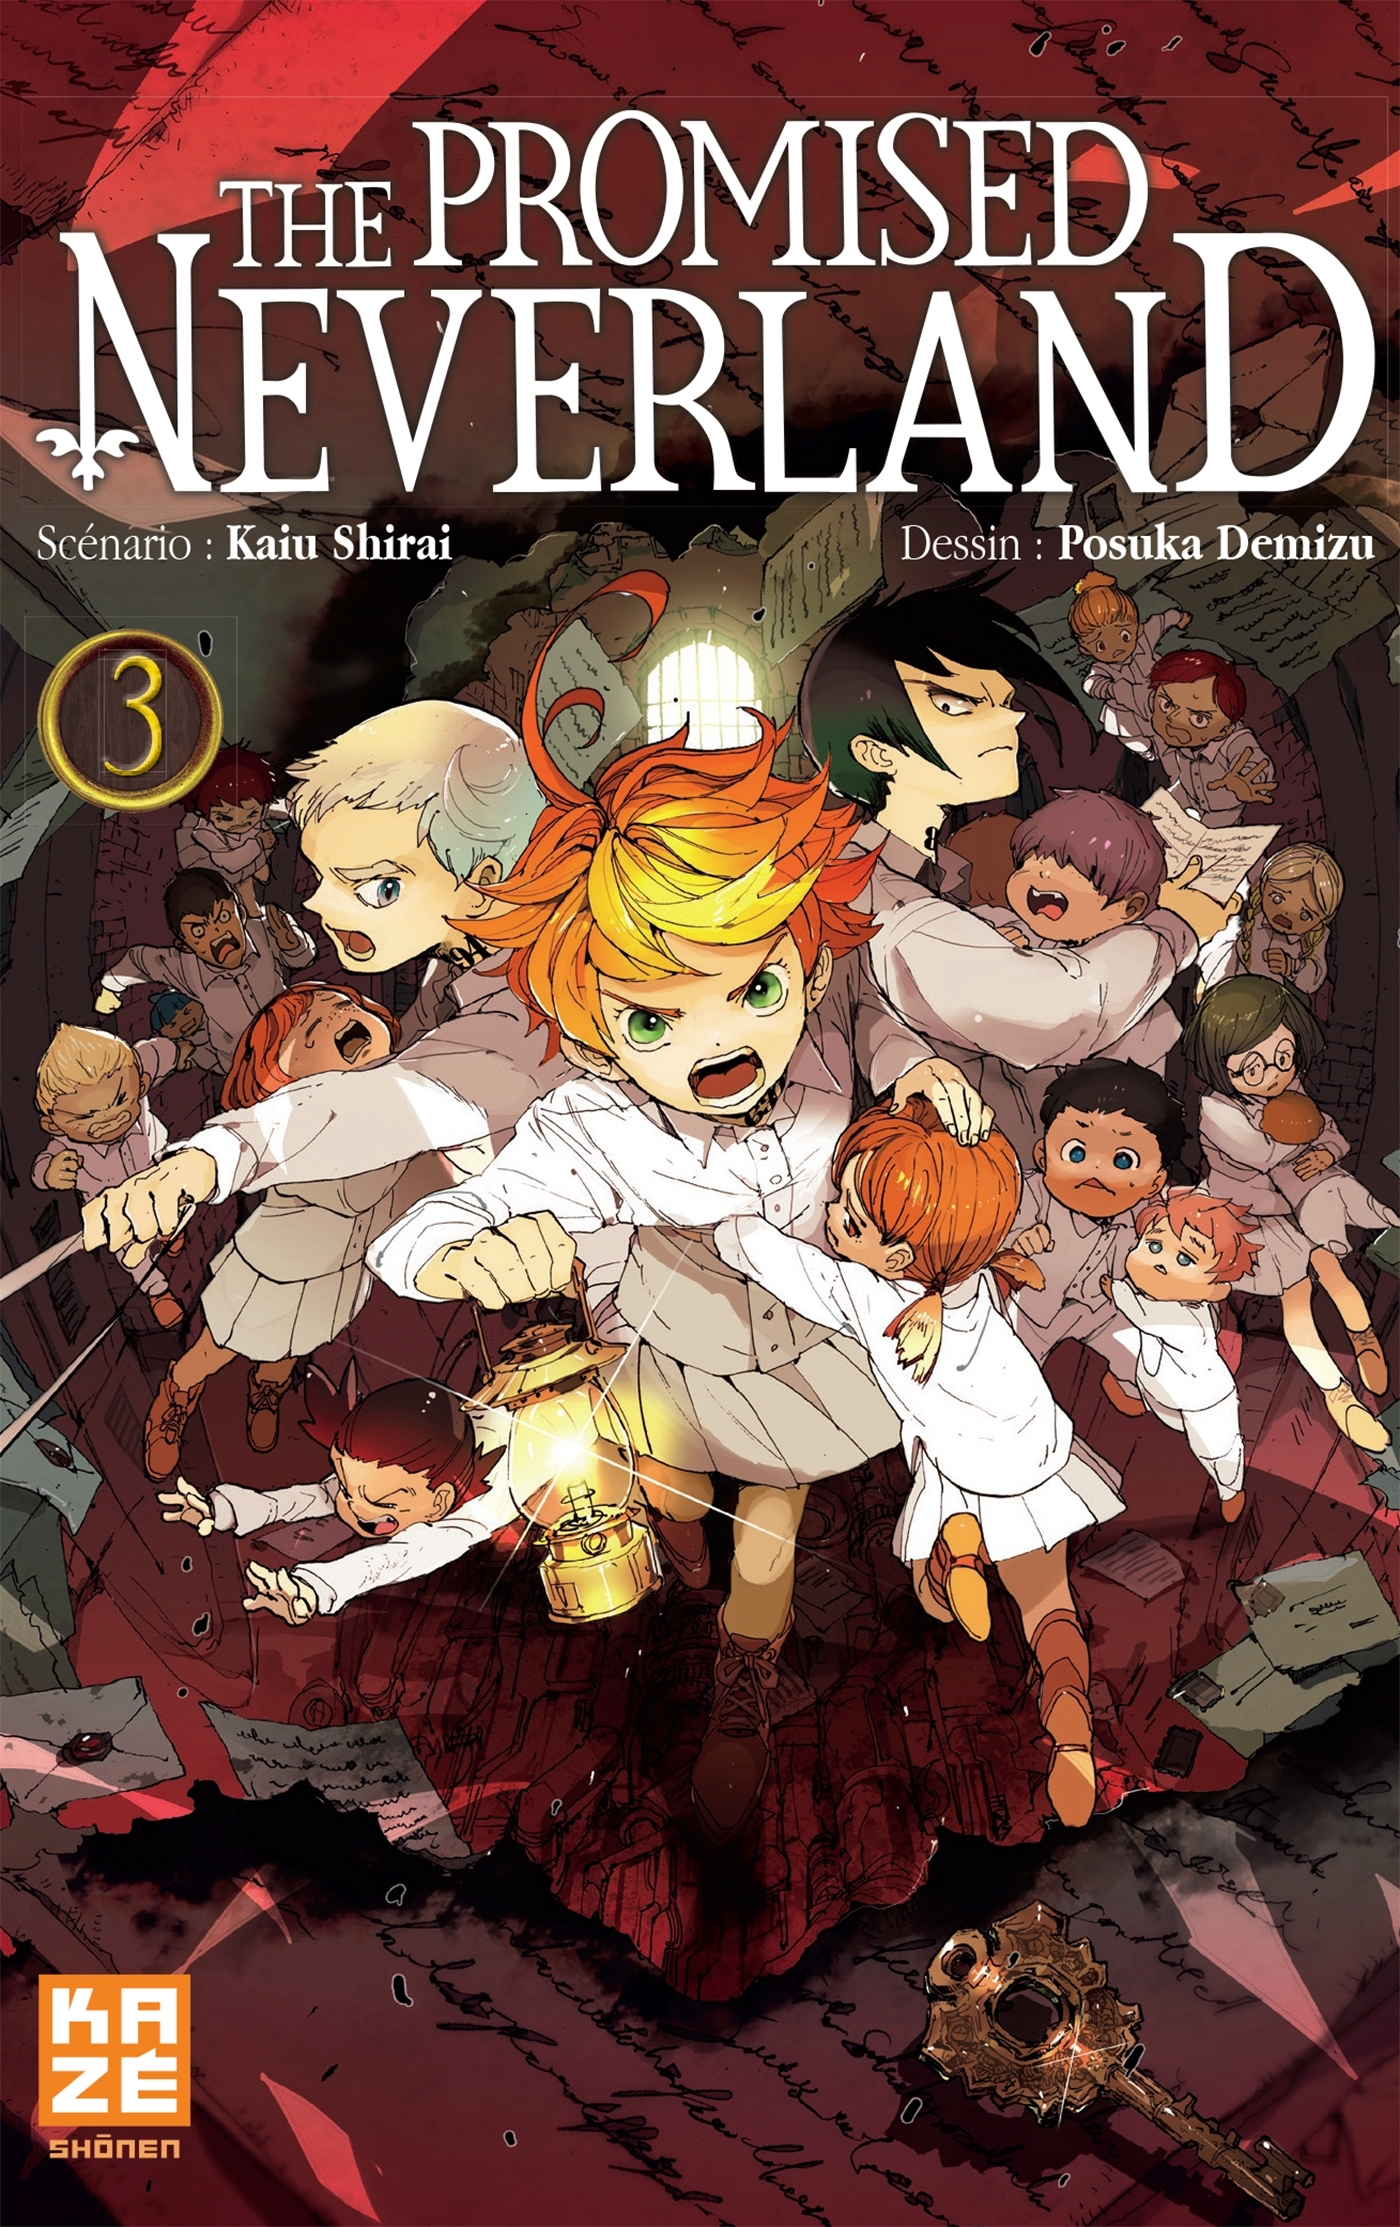 THE PROMISED NEVERLAND 03